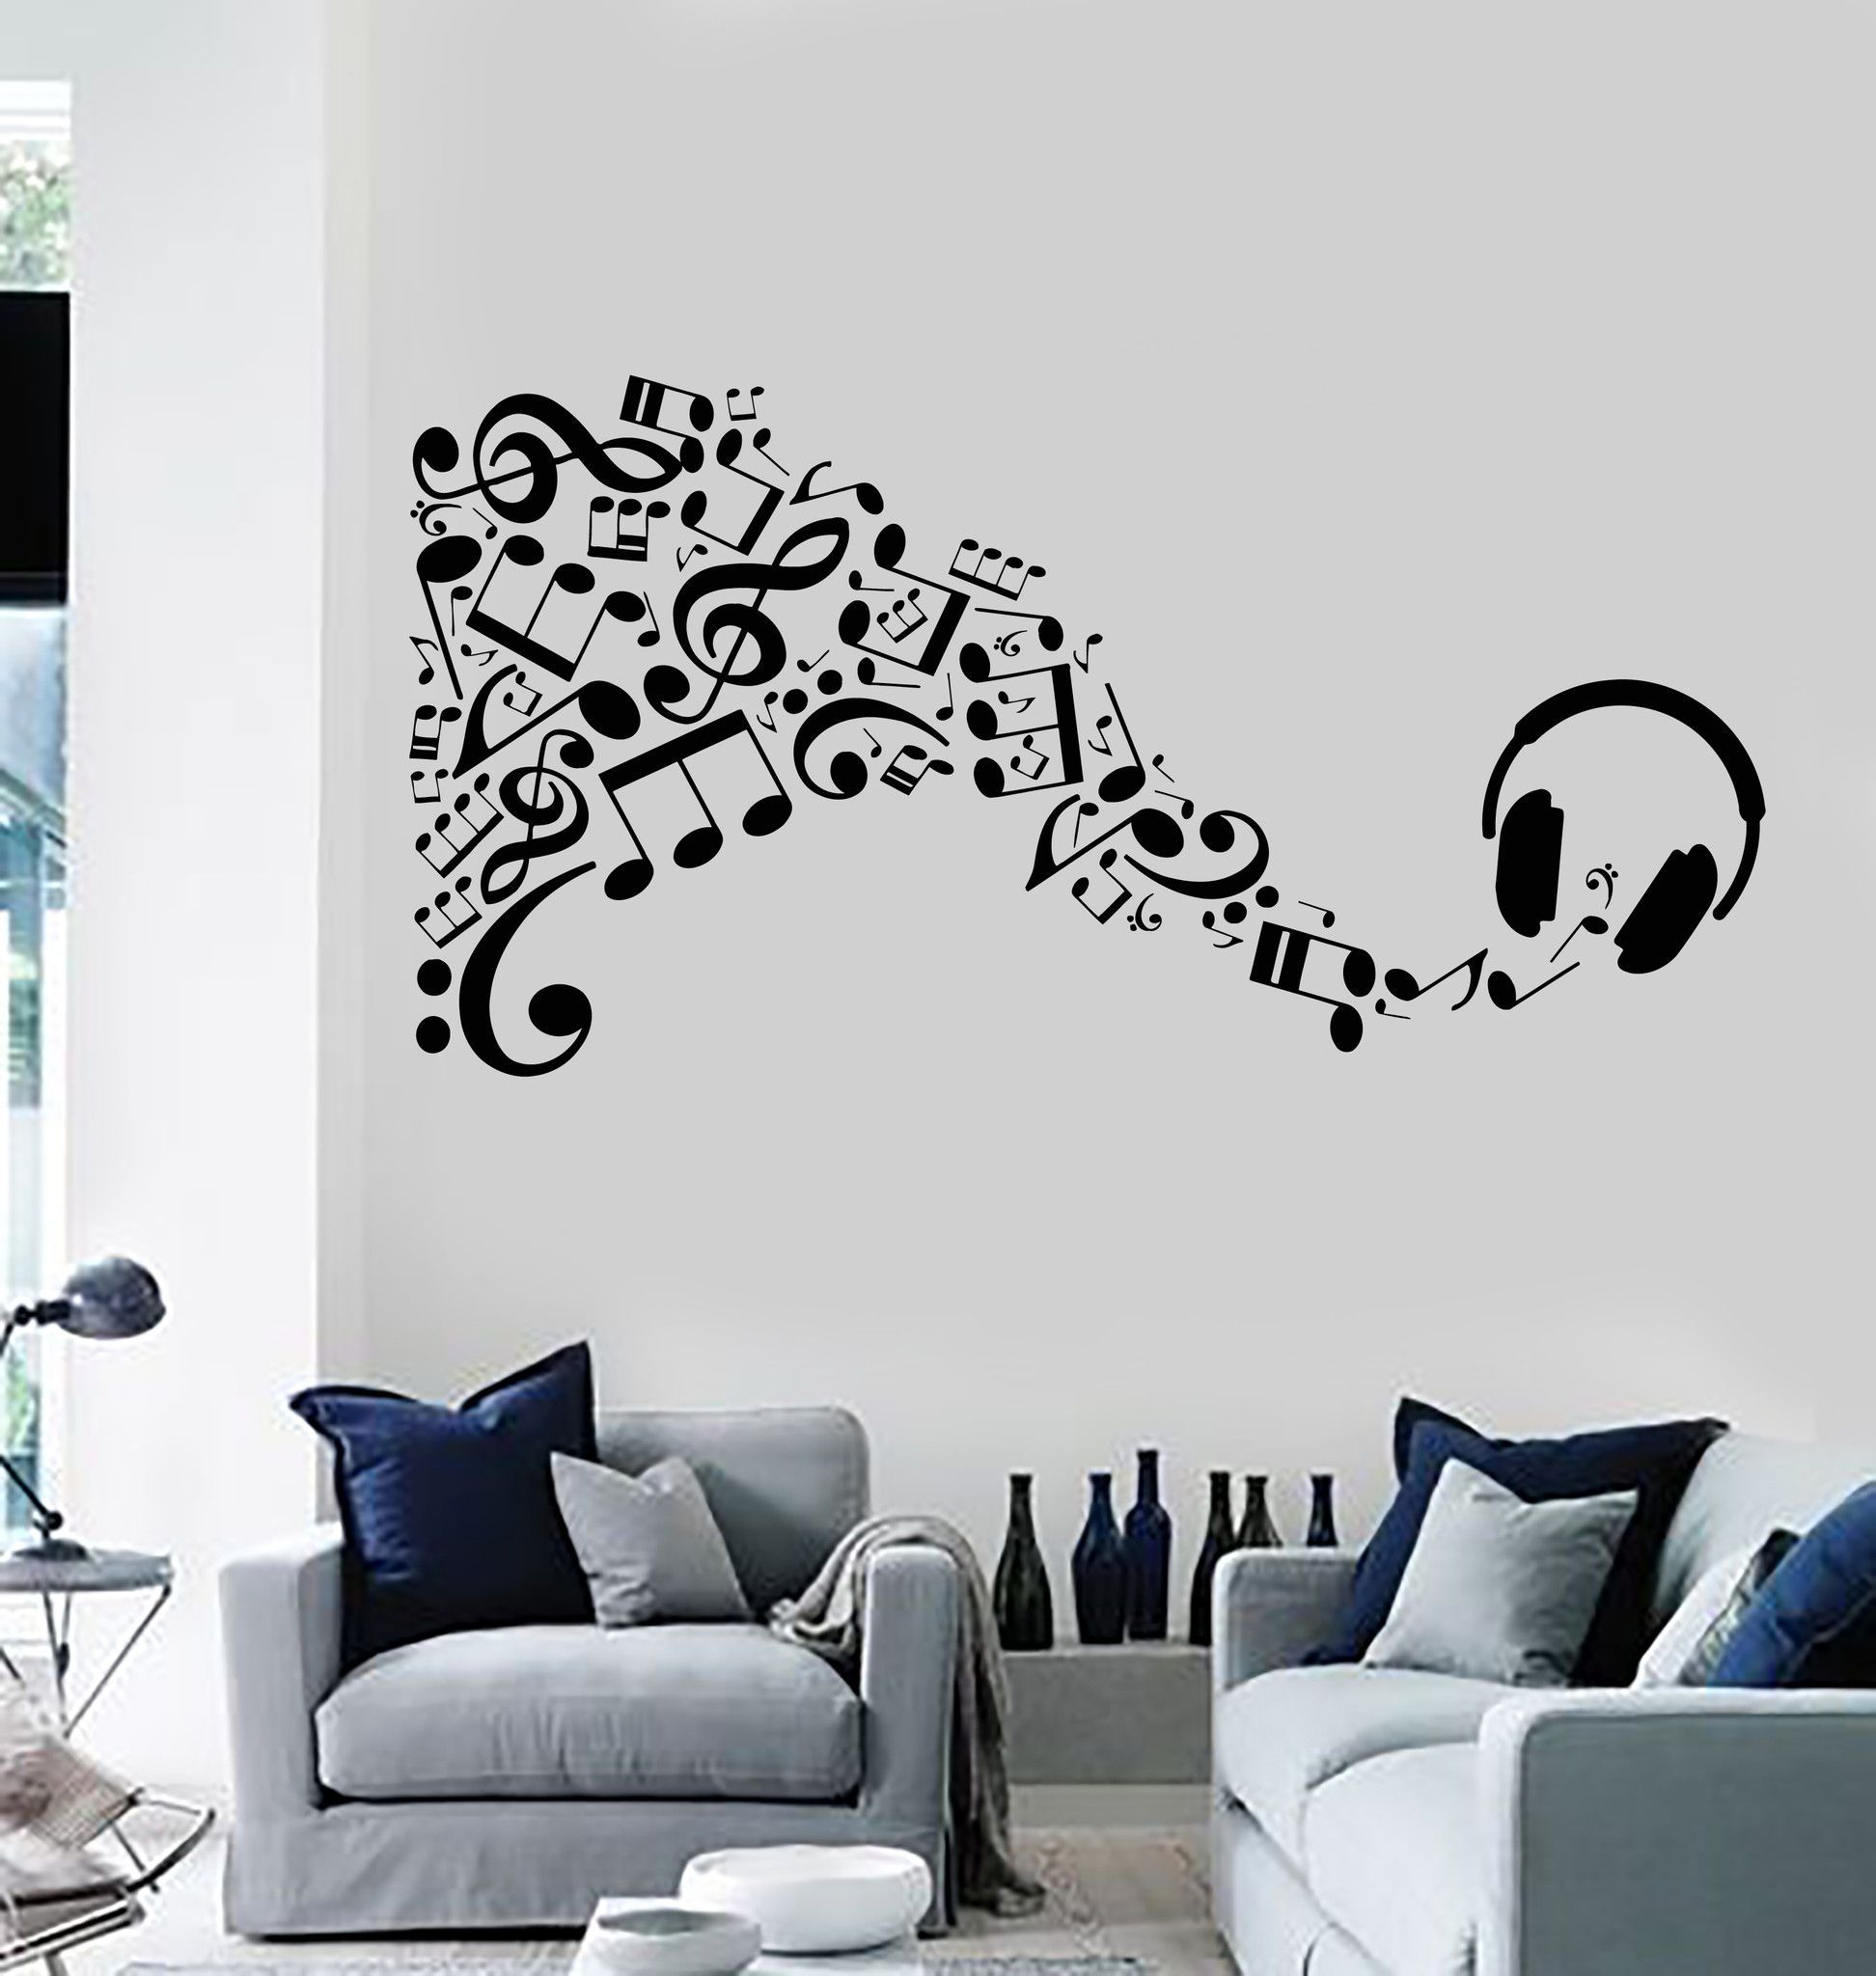 Vinyl Wall Decal Headphones Musical Notes Music Art Stickers (ig4134)